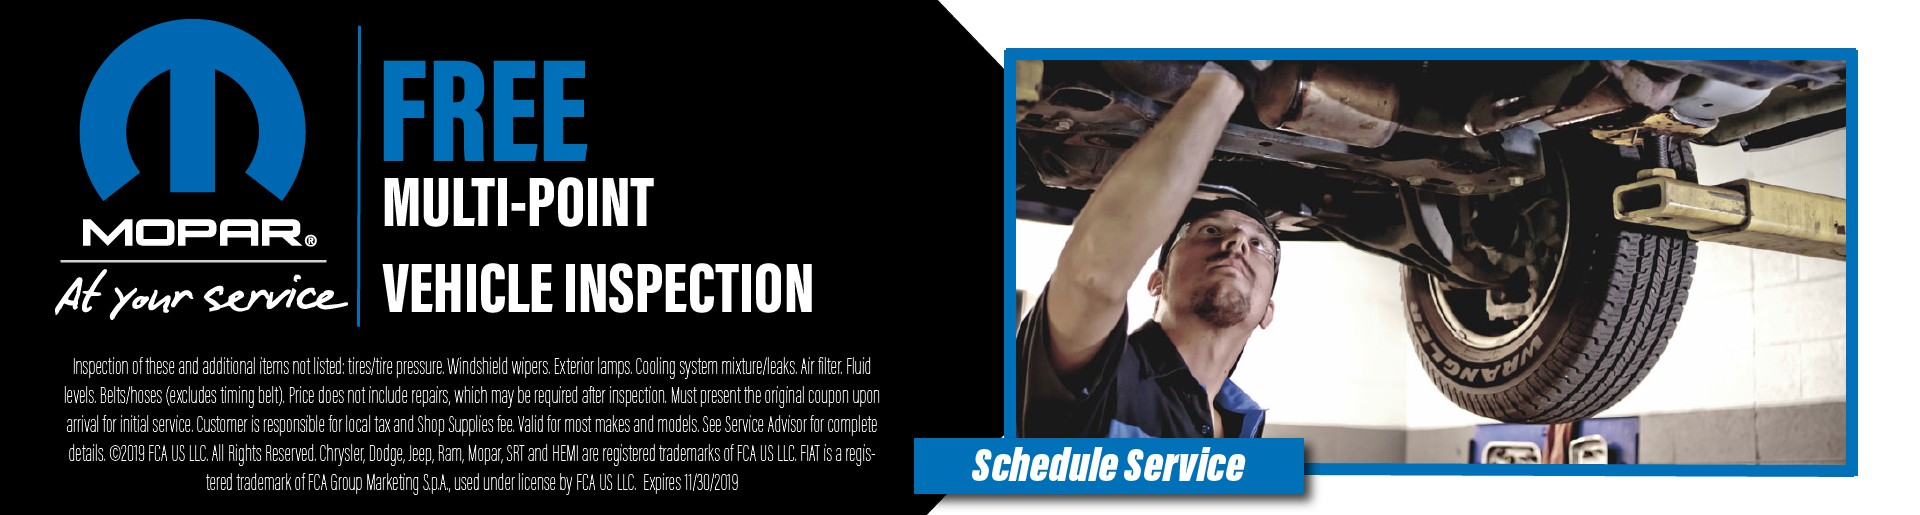 Mopar Vehicle Inspection